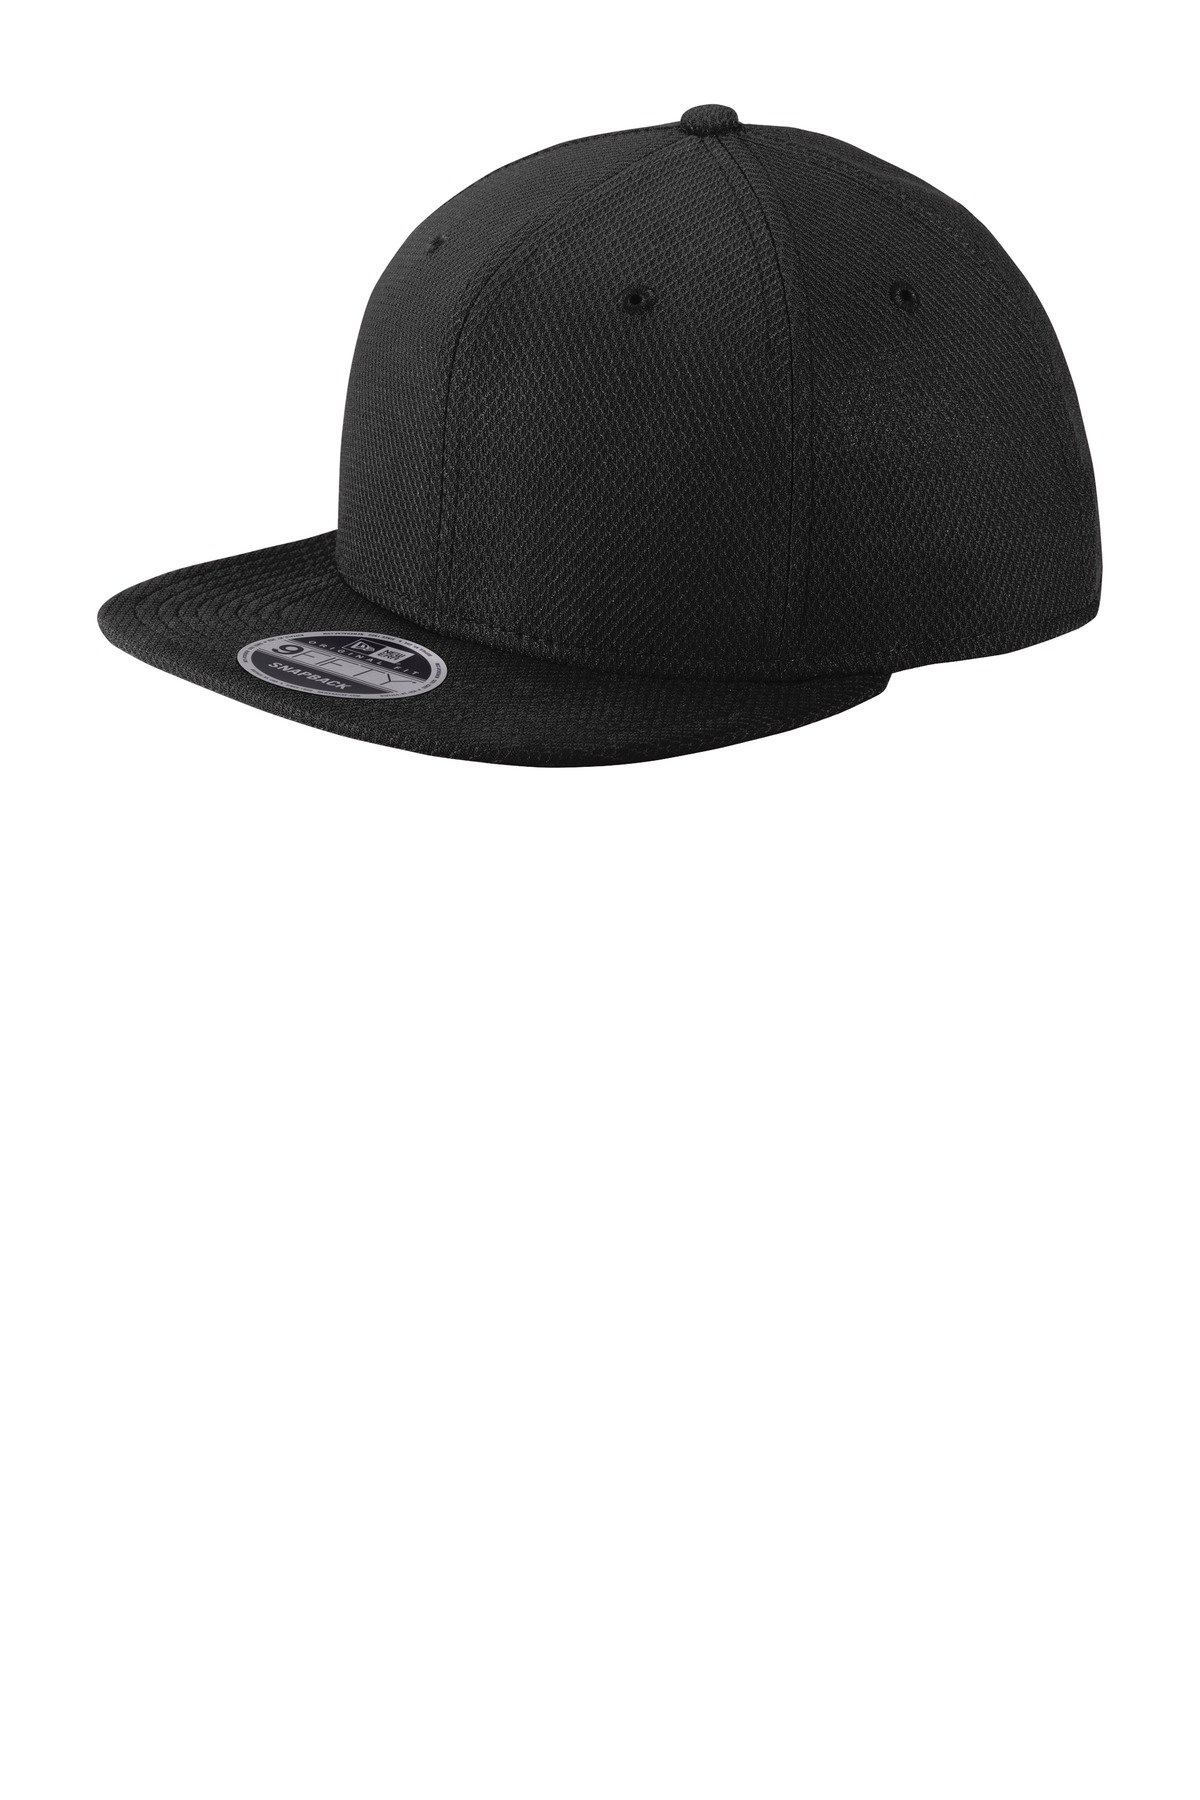 New Era  ®  Original Fit Diamond Era Flat Bill Snapback Cap. NE404 - Black